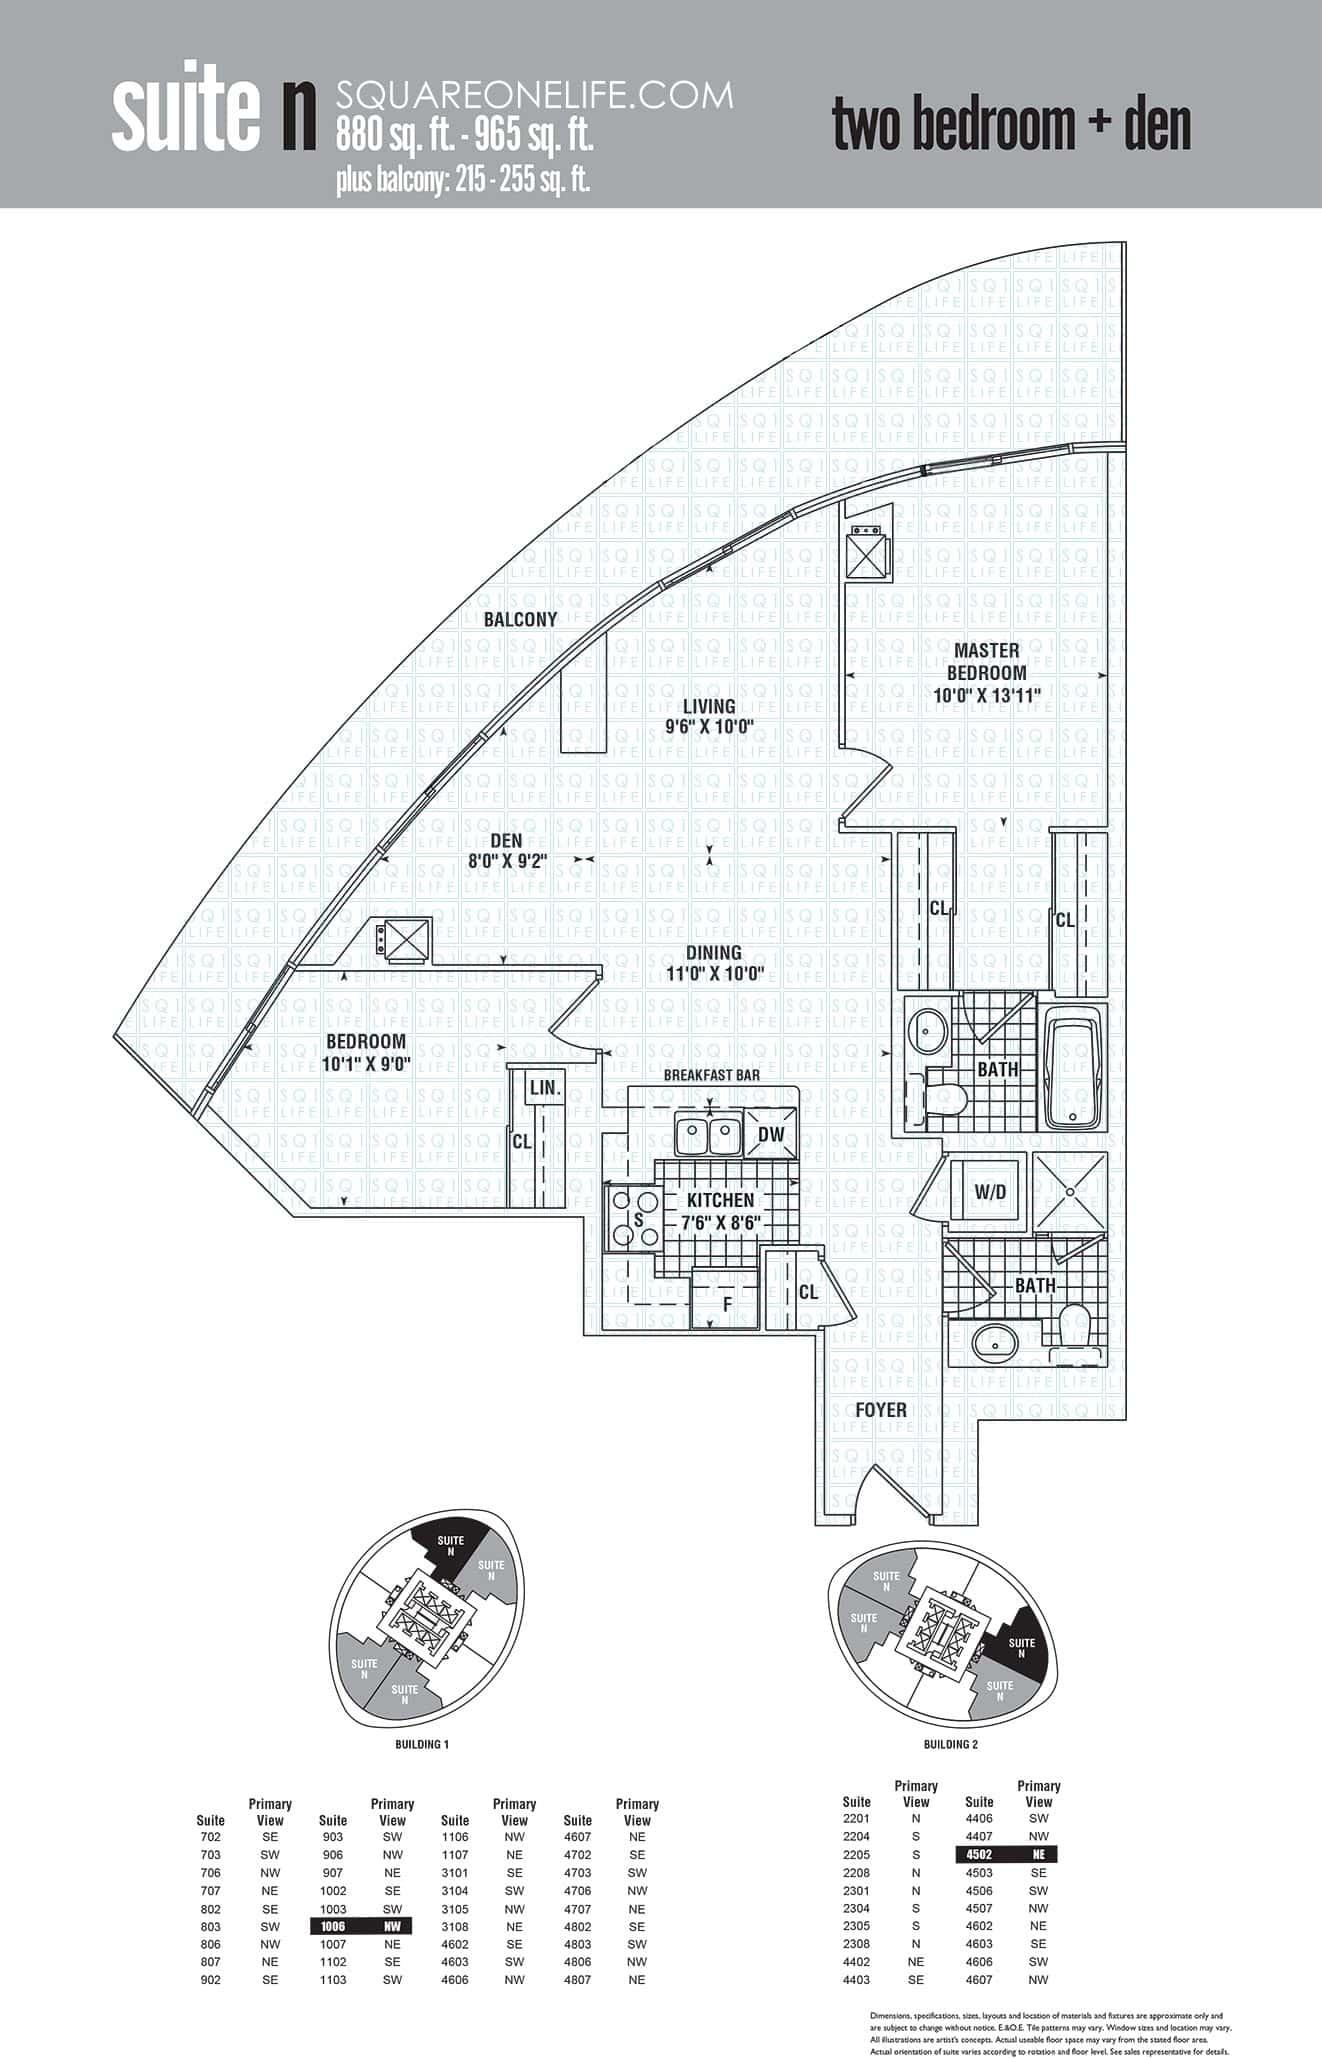 50-Absolute-60-Absolute-Condos-Floorplan-Suite-N-2-Bed-1-Den-2-Bath marilyn monroe condos Marilyn Monroe Condos 50 Absolute 60 Absolute Condos Floorplan Suite N 2 Bed 1 Den 2 Bath